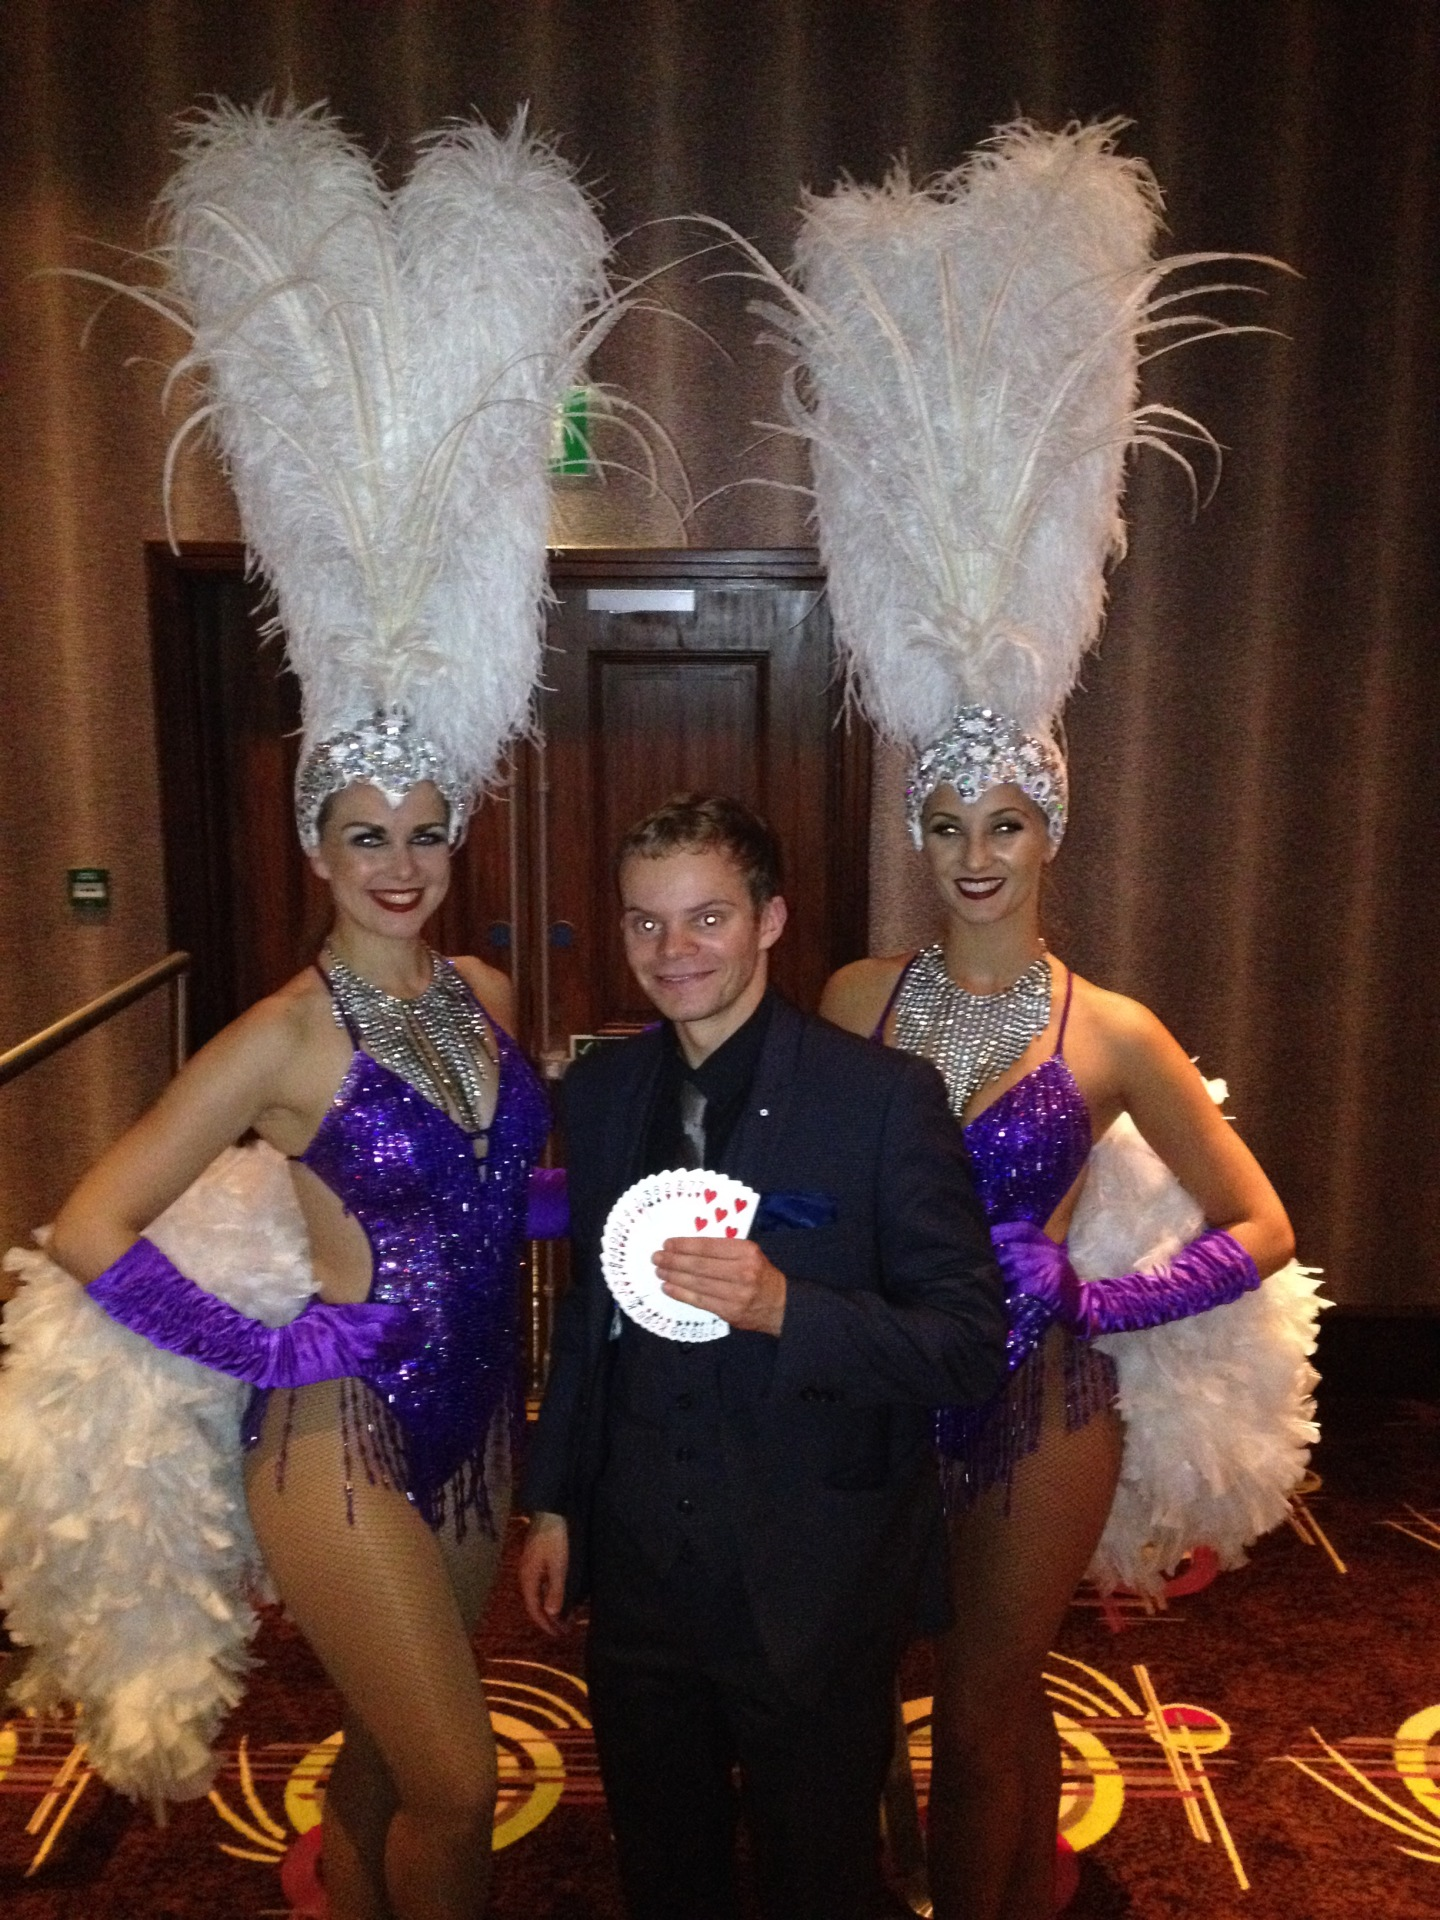 Manchester Magician Danny Jewell with showgirls at 235 Manchester Casino